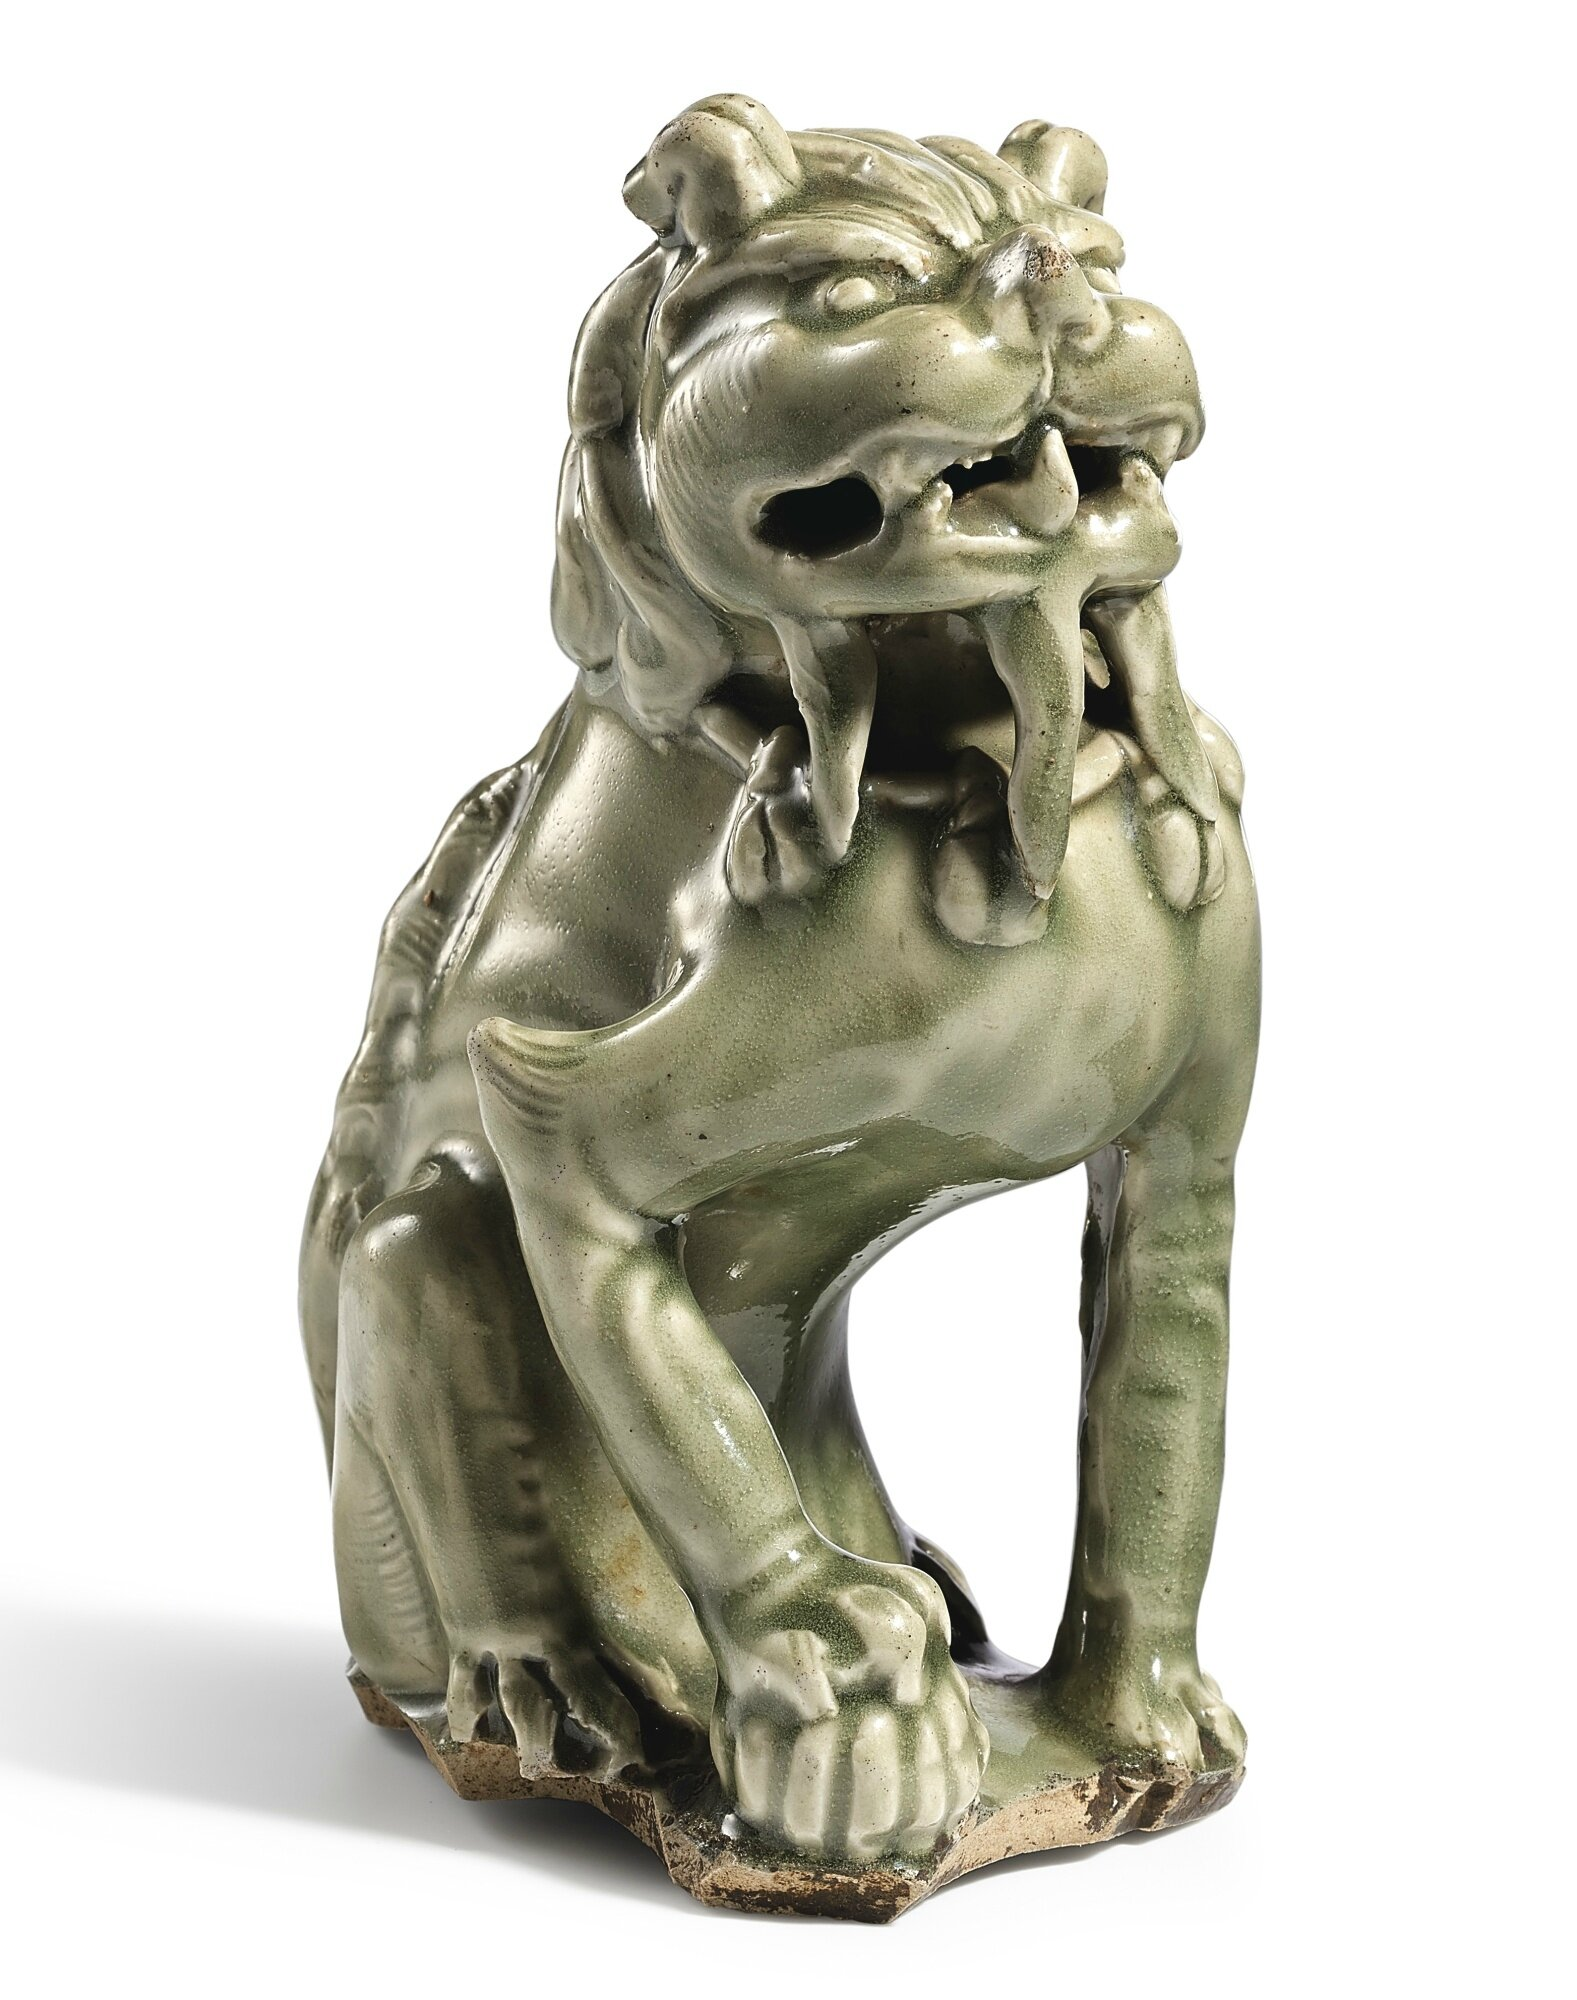 A 'Yaozhou' celadon figure of a lion, Five Dynasties (907-960) or earlier